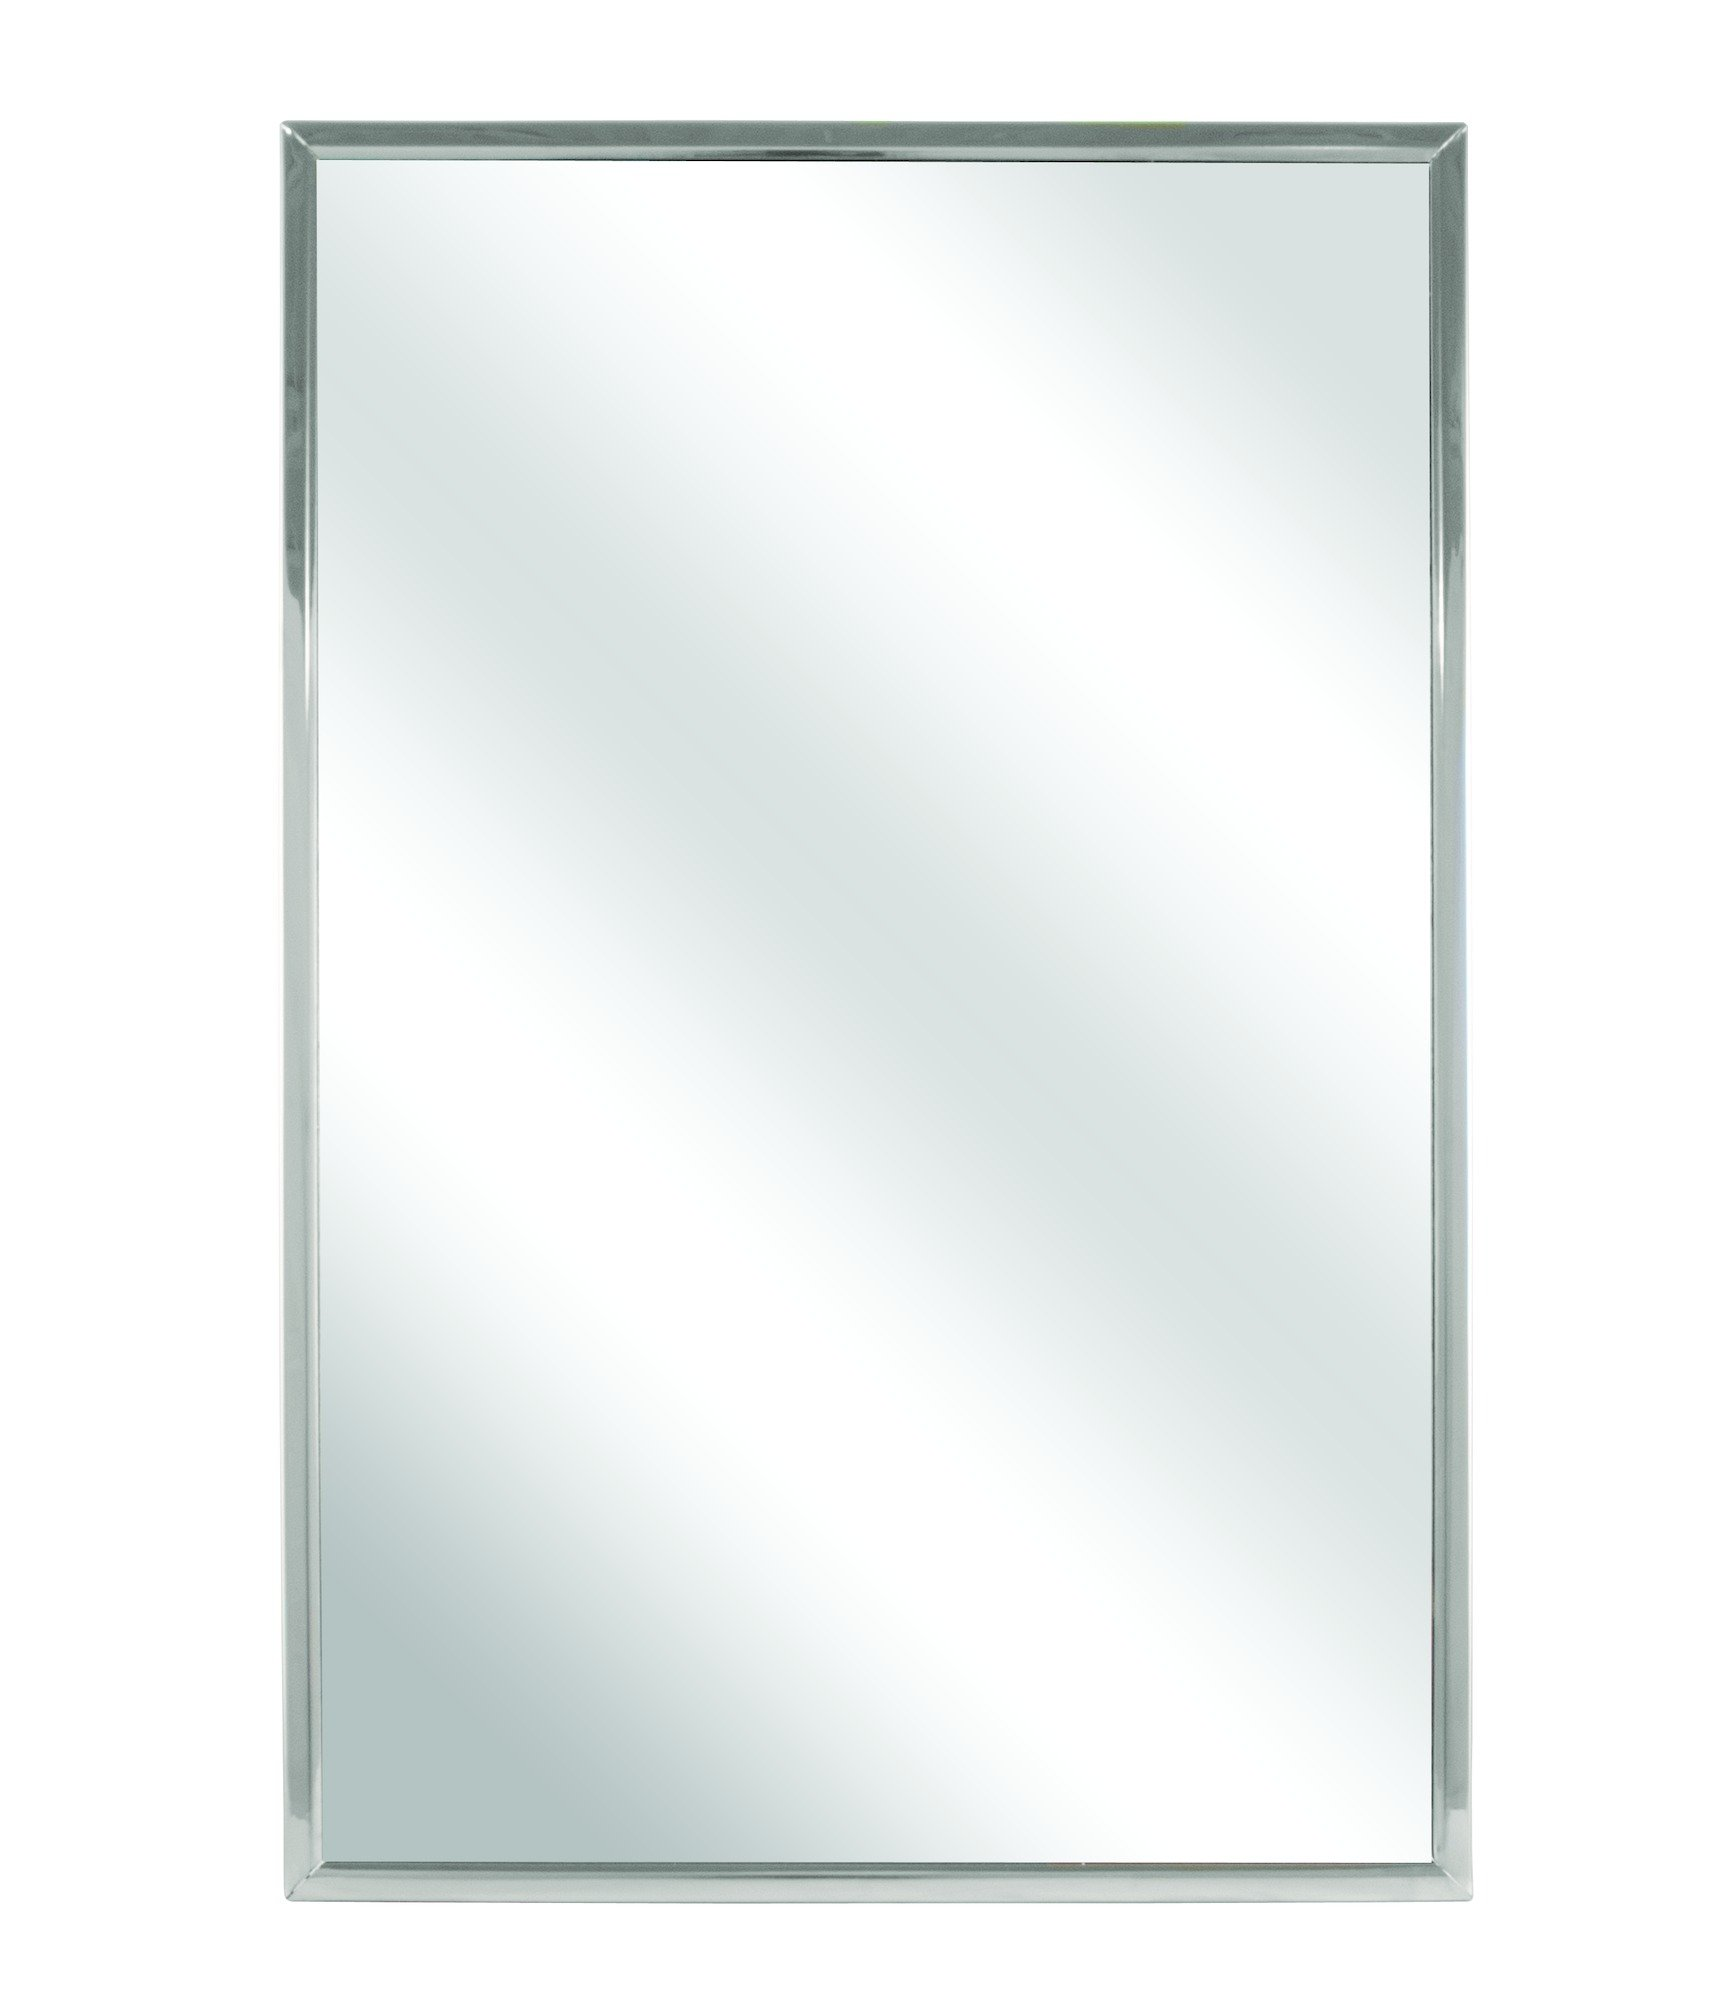 Commercial Restroom Mirror 781 | Accurate Door & Hardware, Inc.